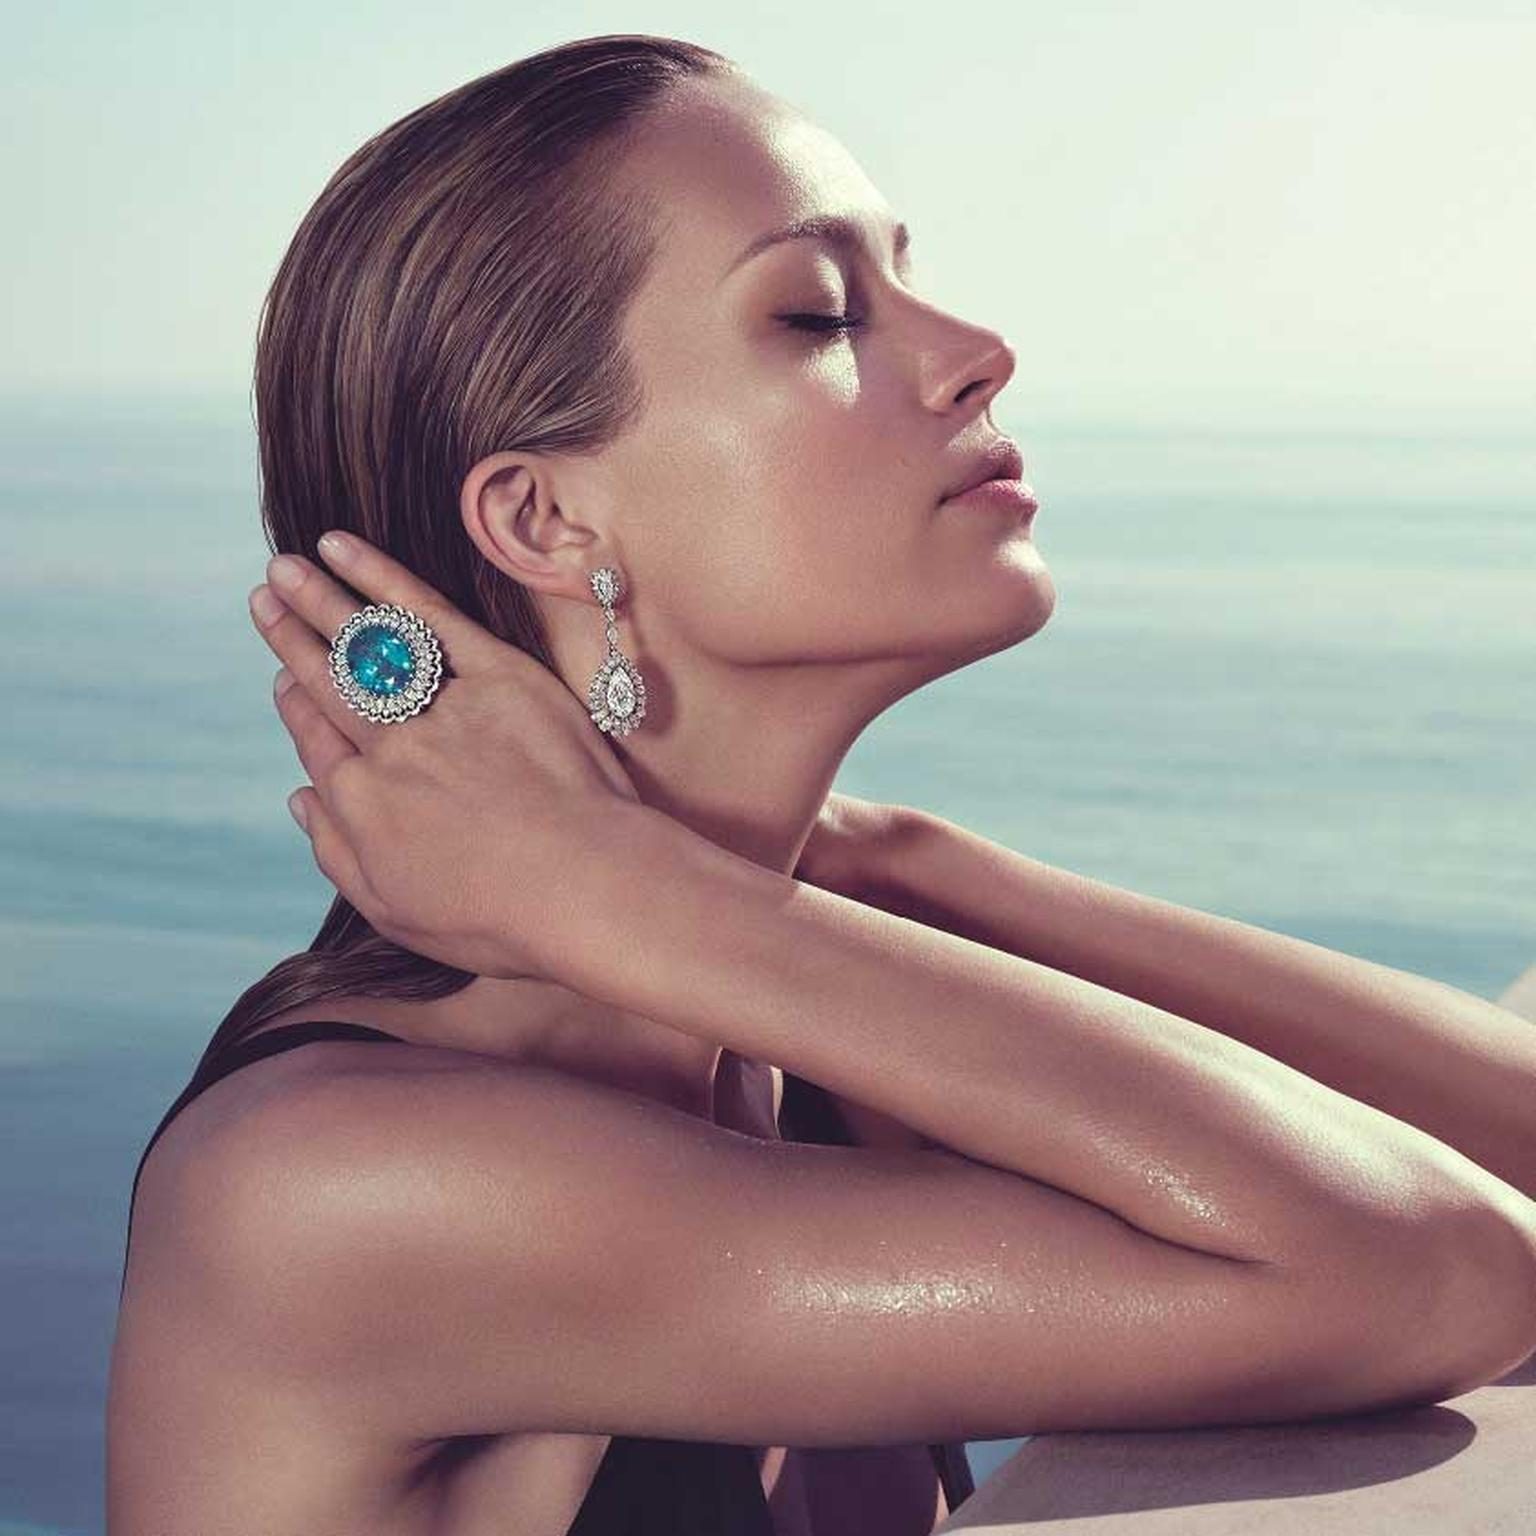 Chopard teams up with supermodel Petra Nemcova for a summertime ...